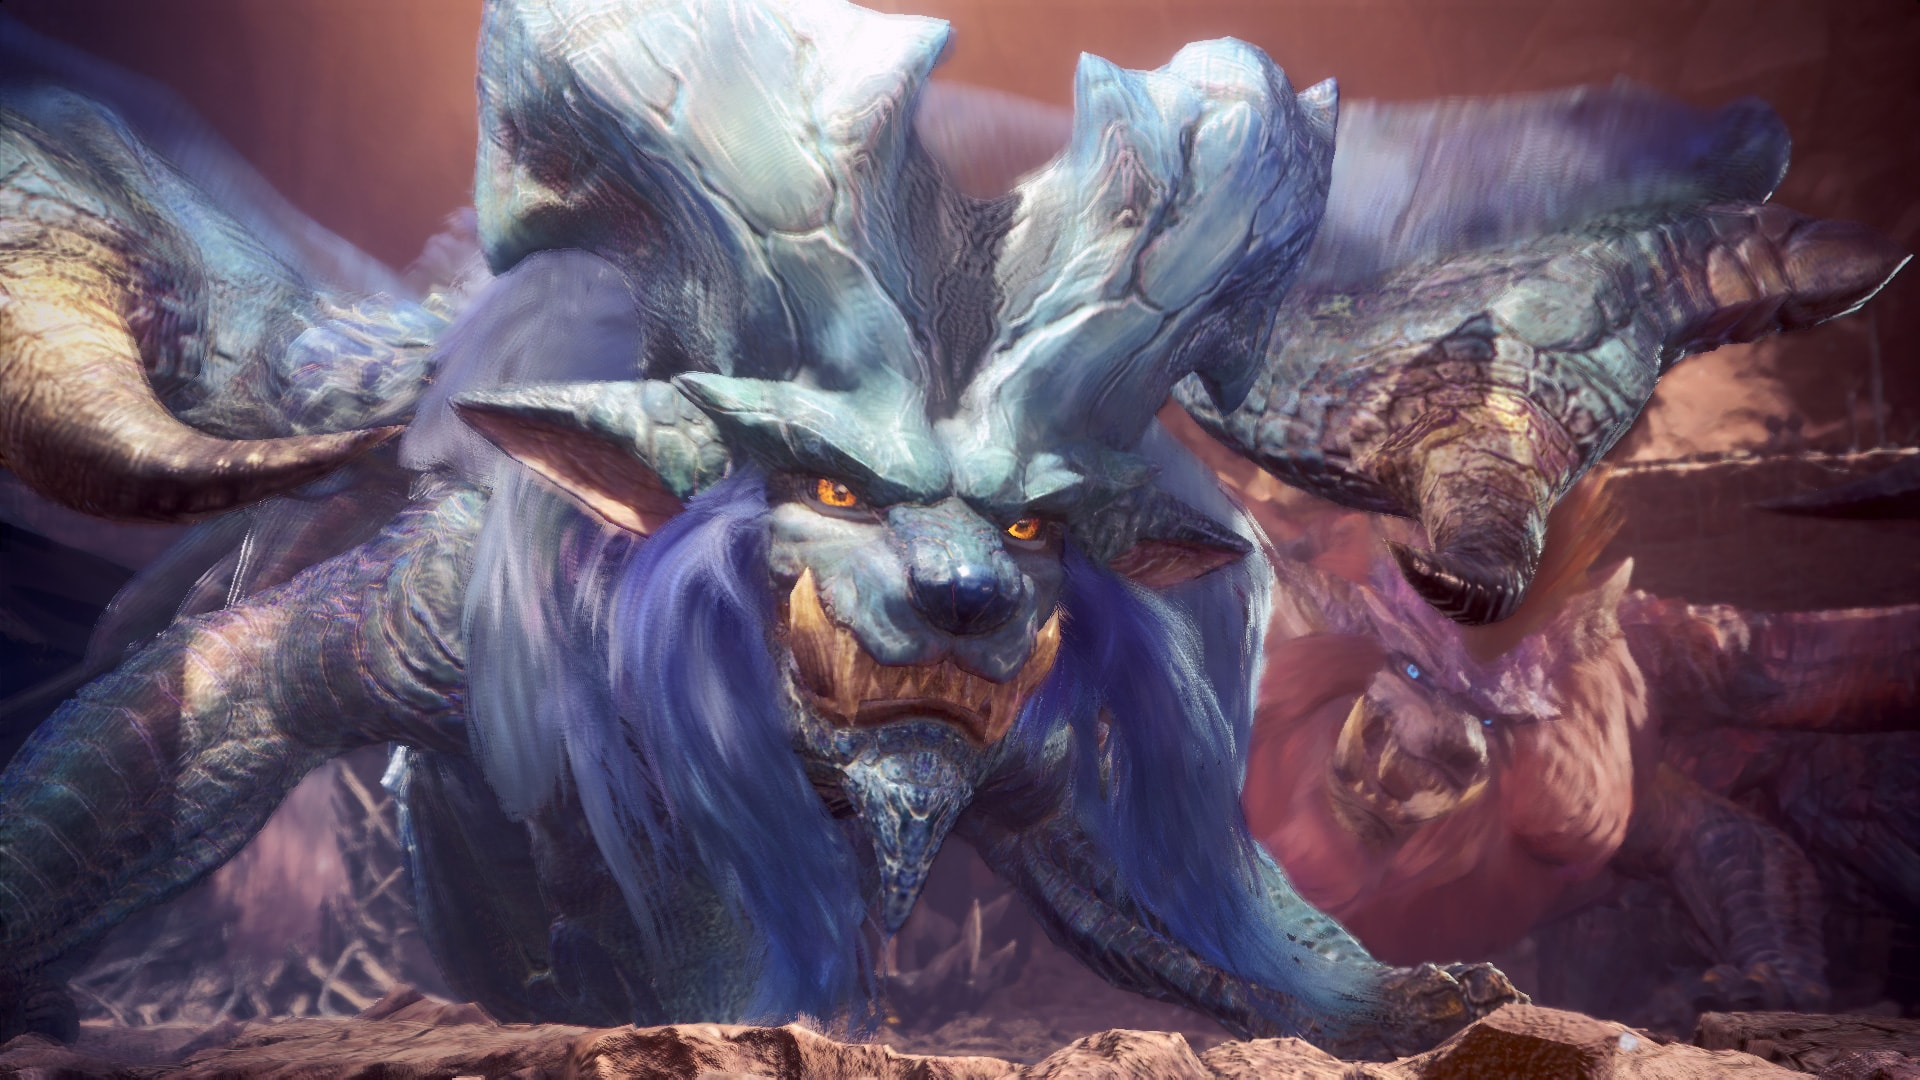 Monster Hunter: World high resolution texture pack is coming